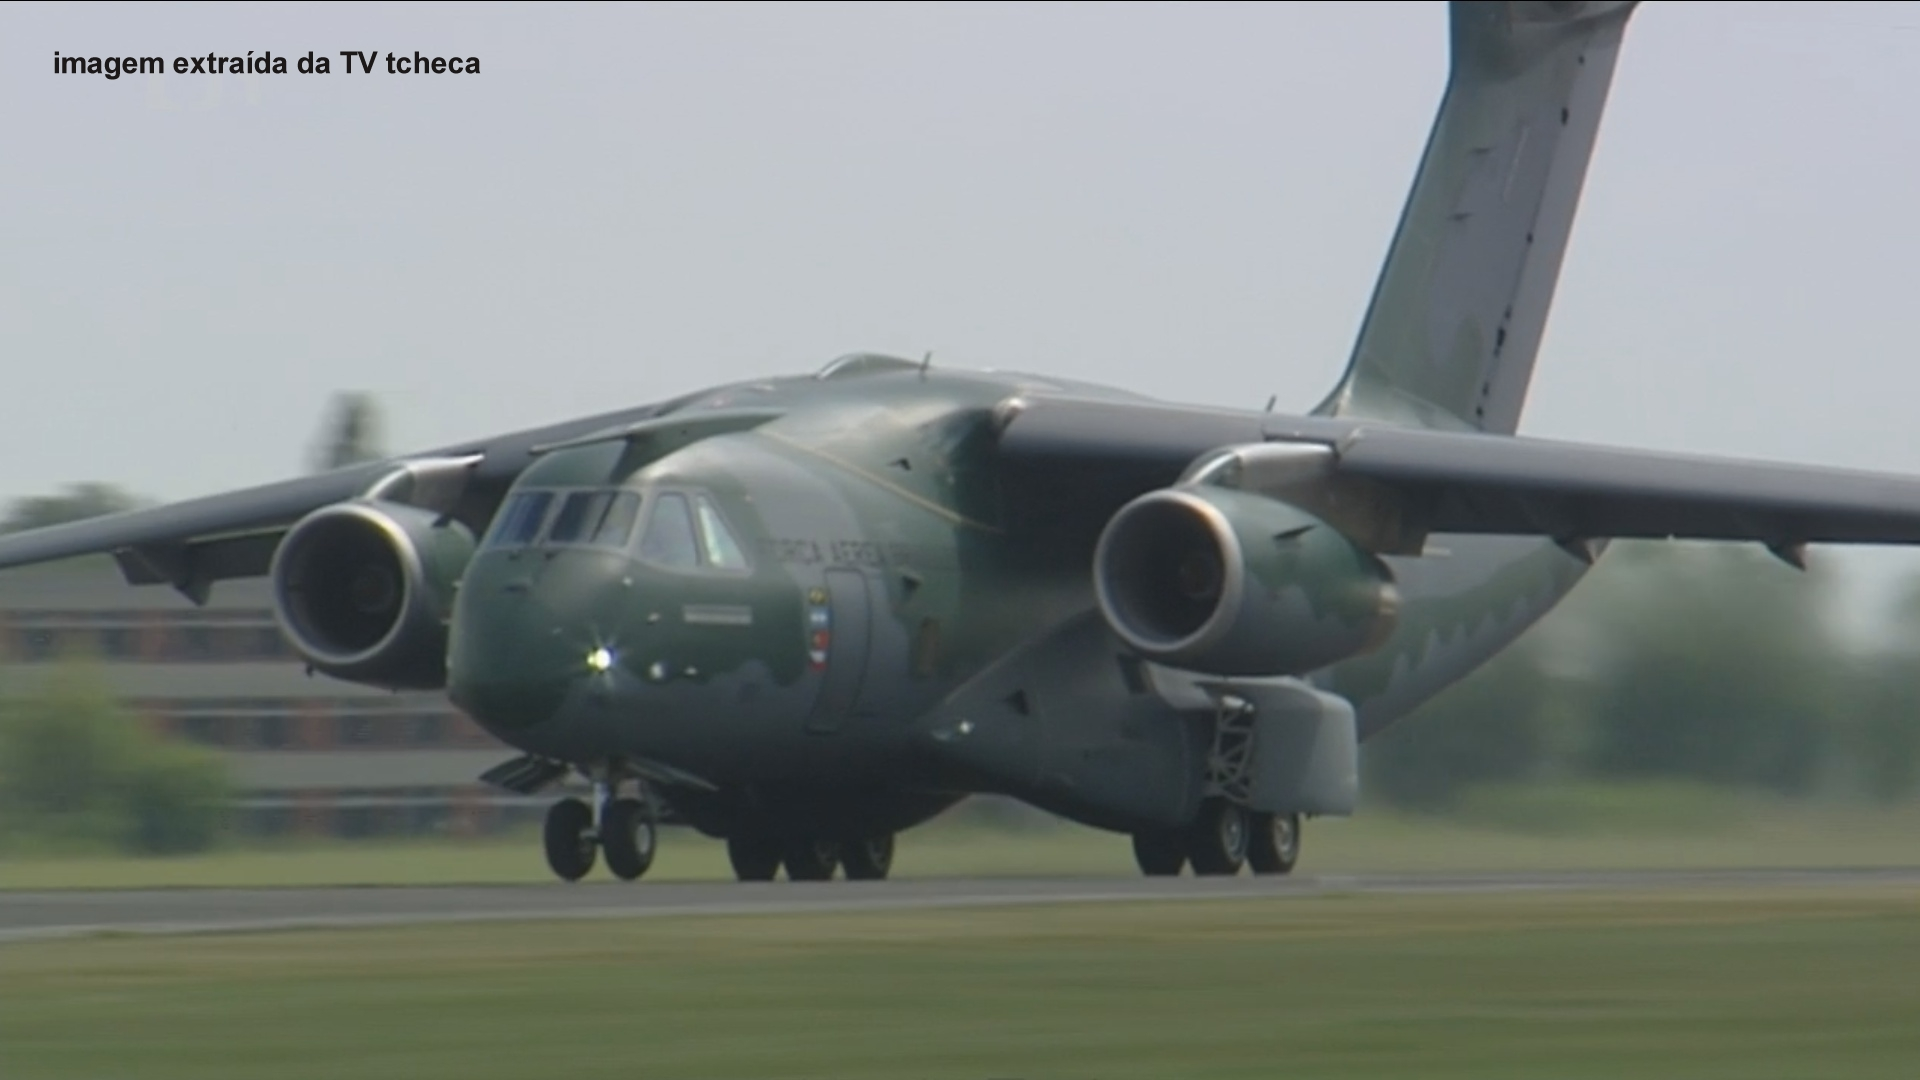 KC-390 foto TV tcheca04